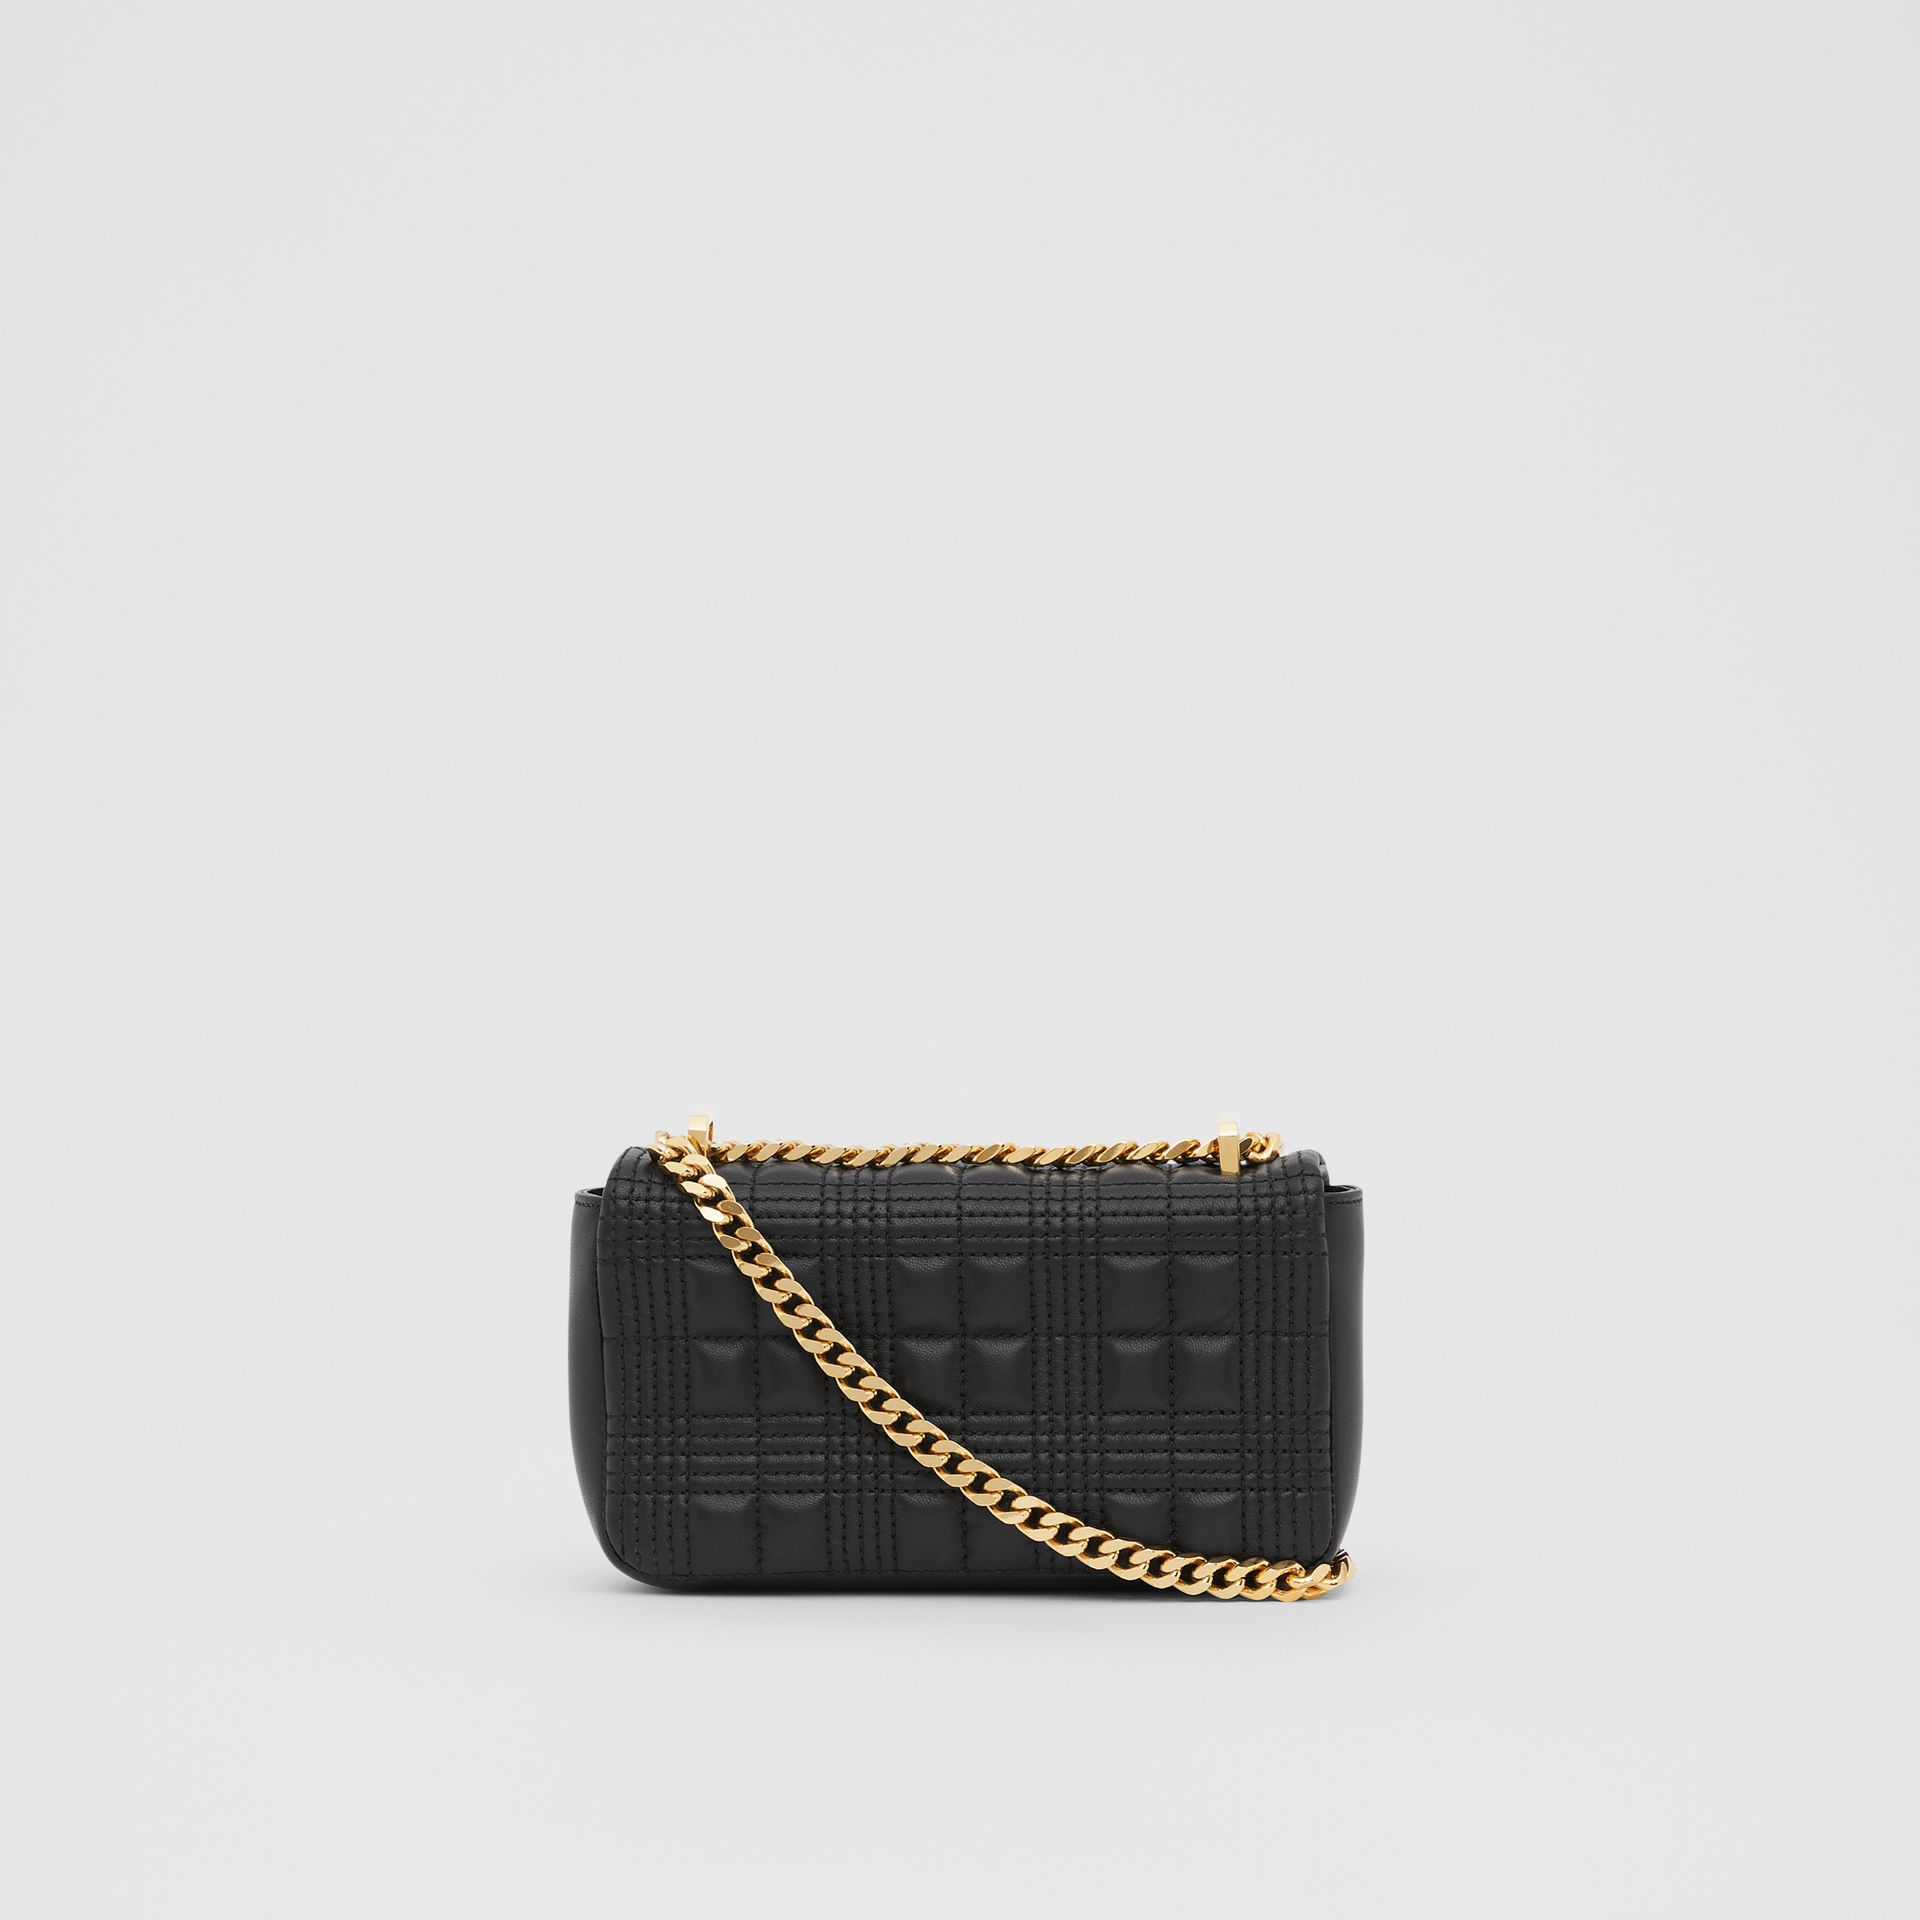 Mini Quilted Lambskin Lola Bag in Black/light Gold - Women | Burberry - gallery image 7